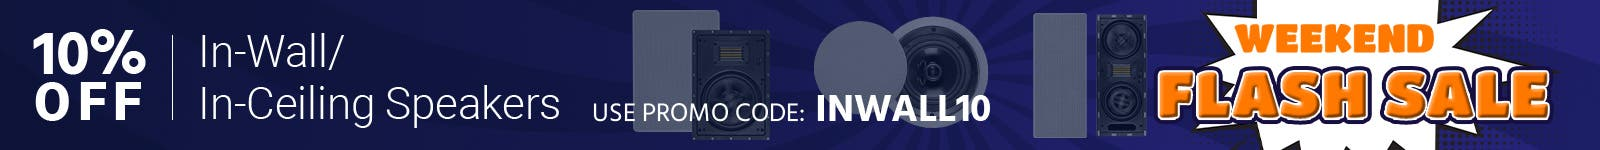 Weekend Flash Sale 10% off In-Wall/In-Ceiling Speakers Use promo code: INWALL10 Shop Now